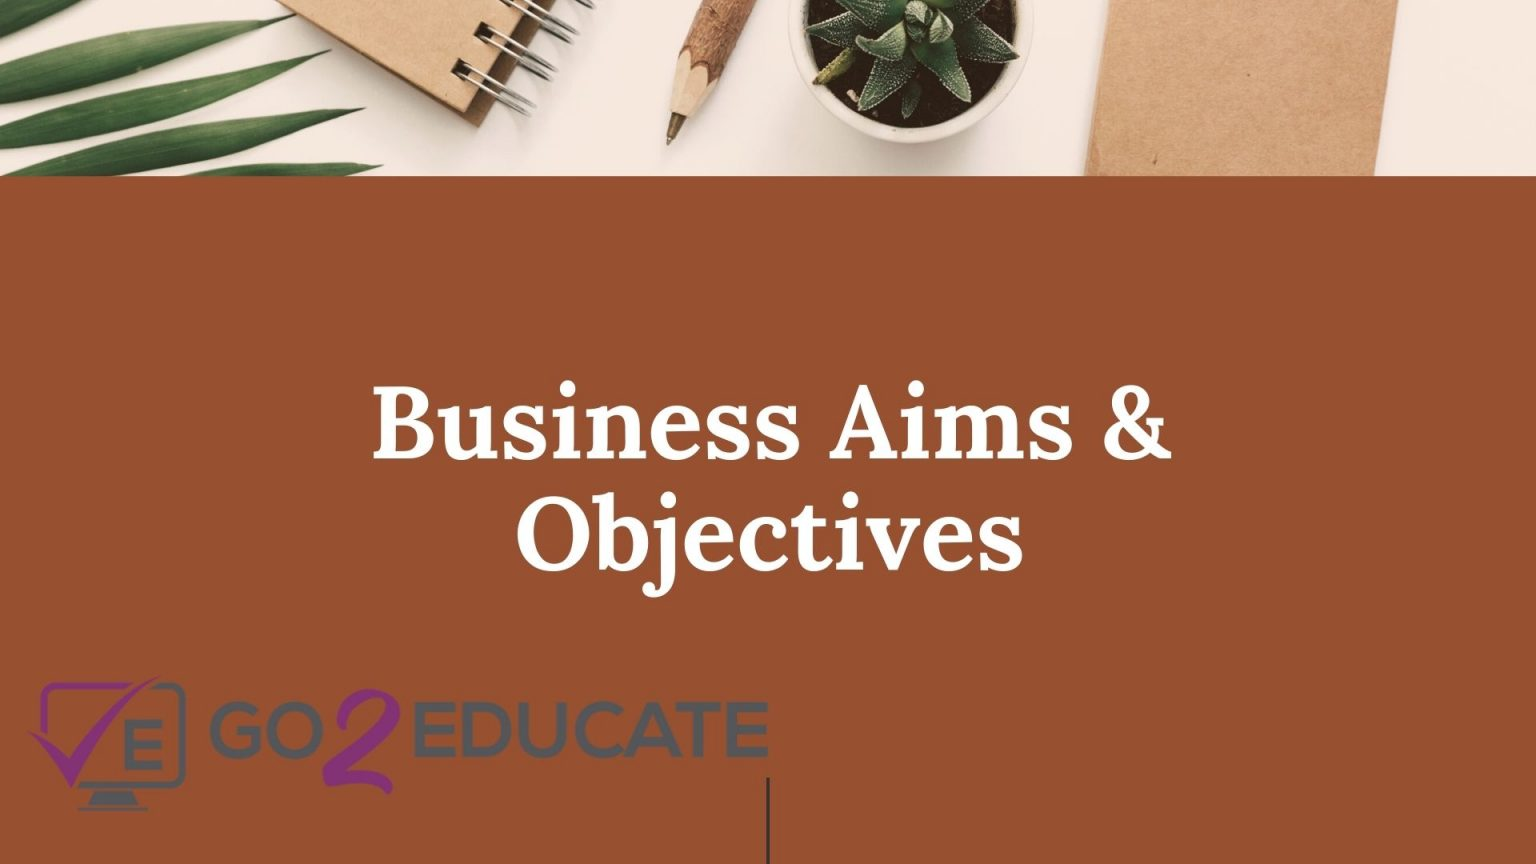 Business Aims & Objectives Home